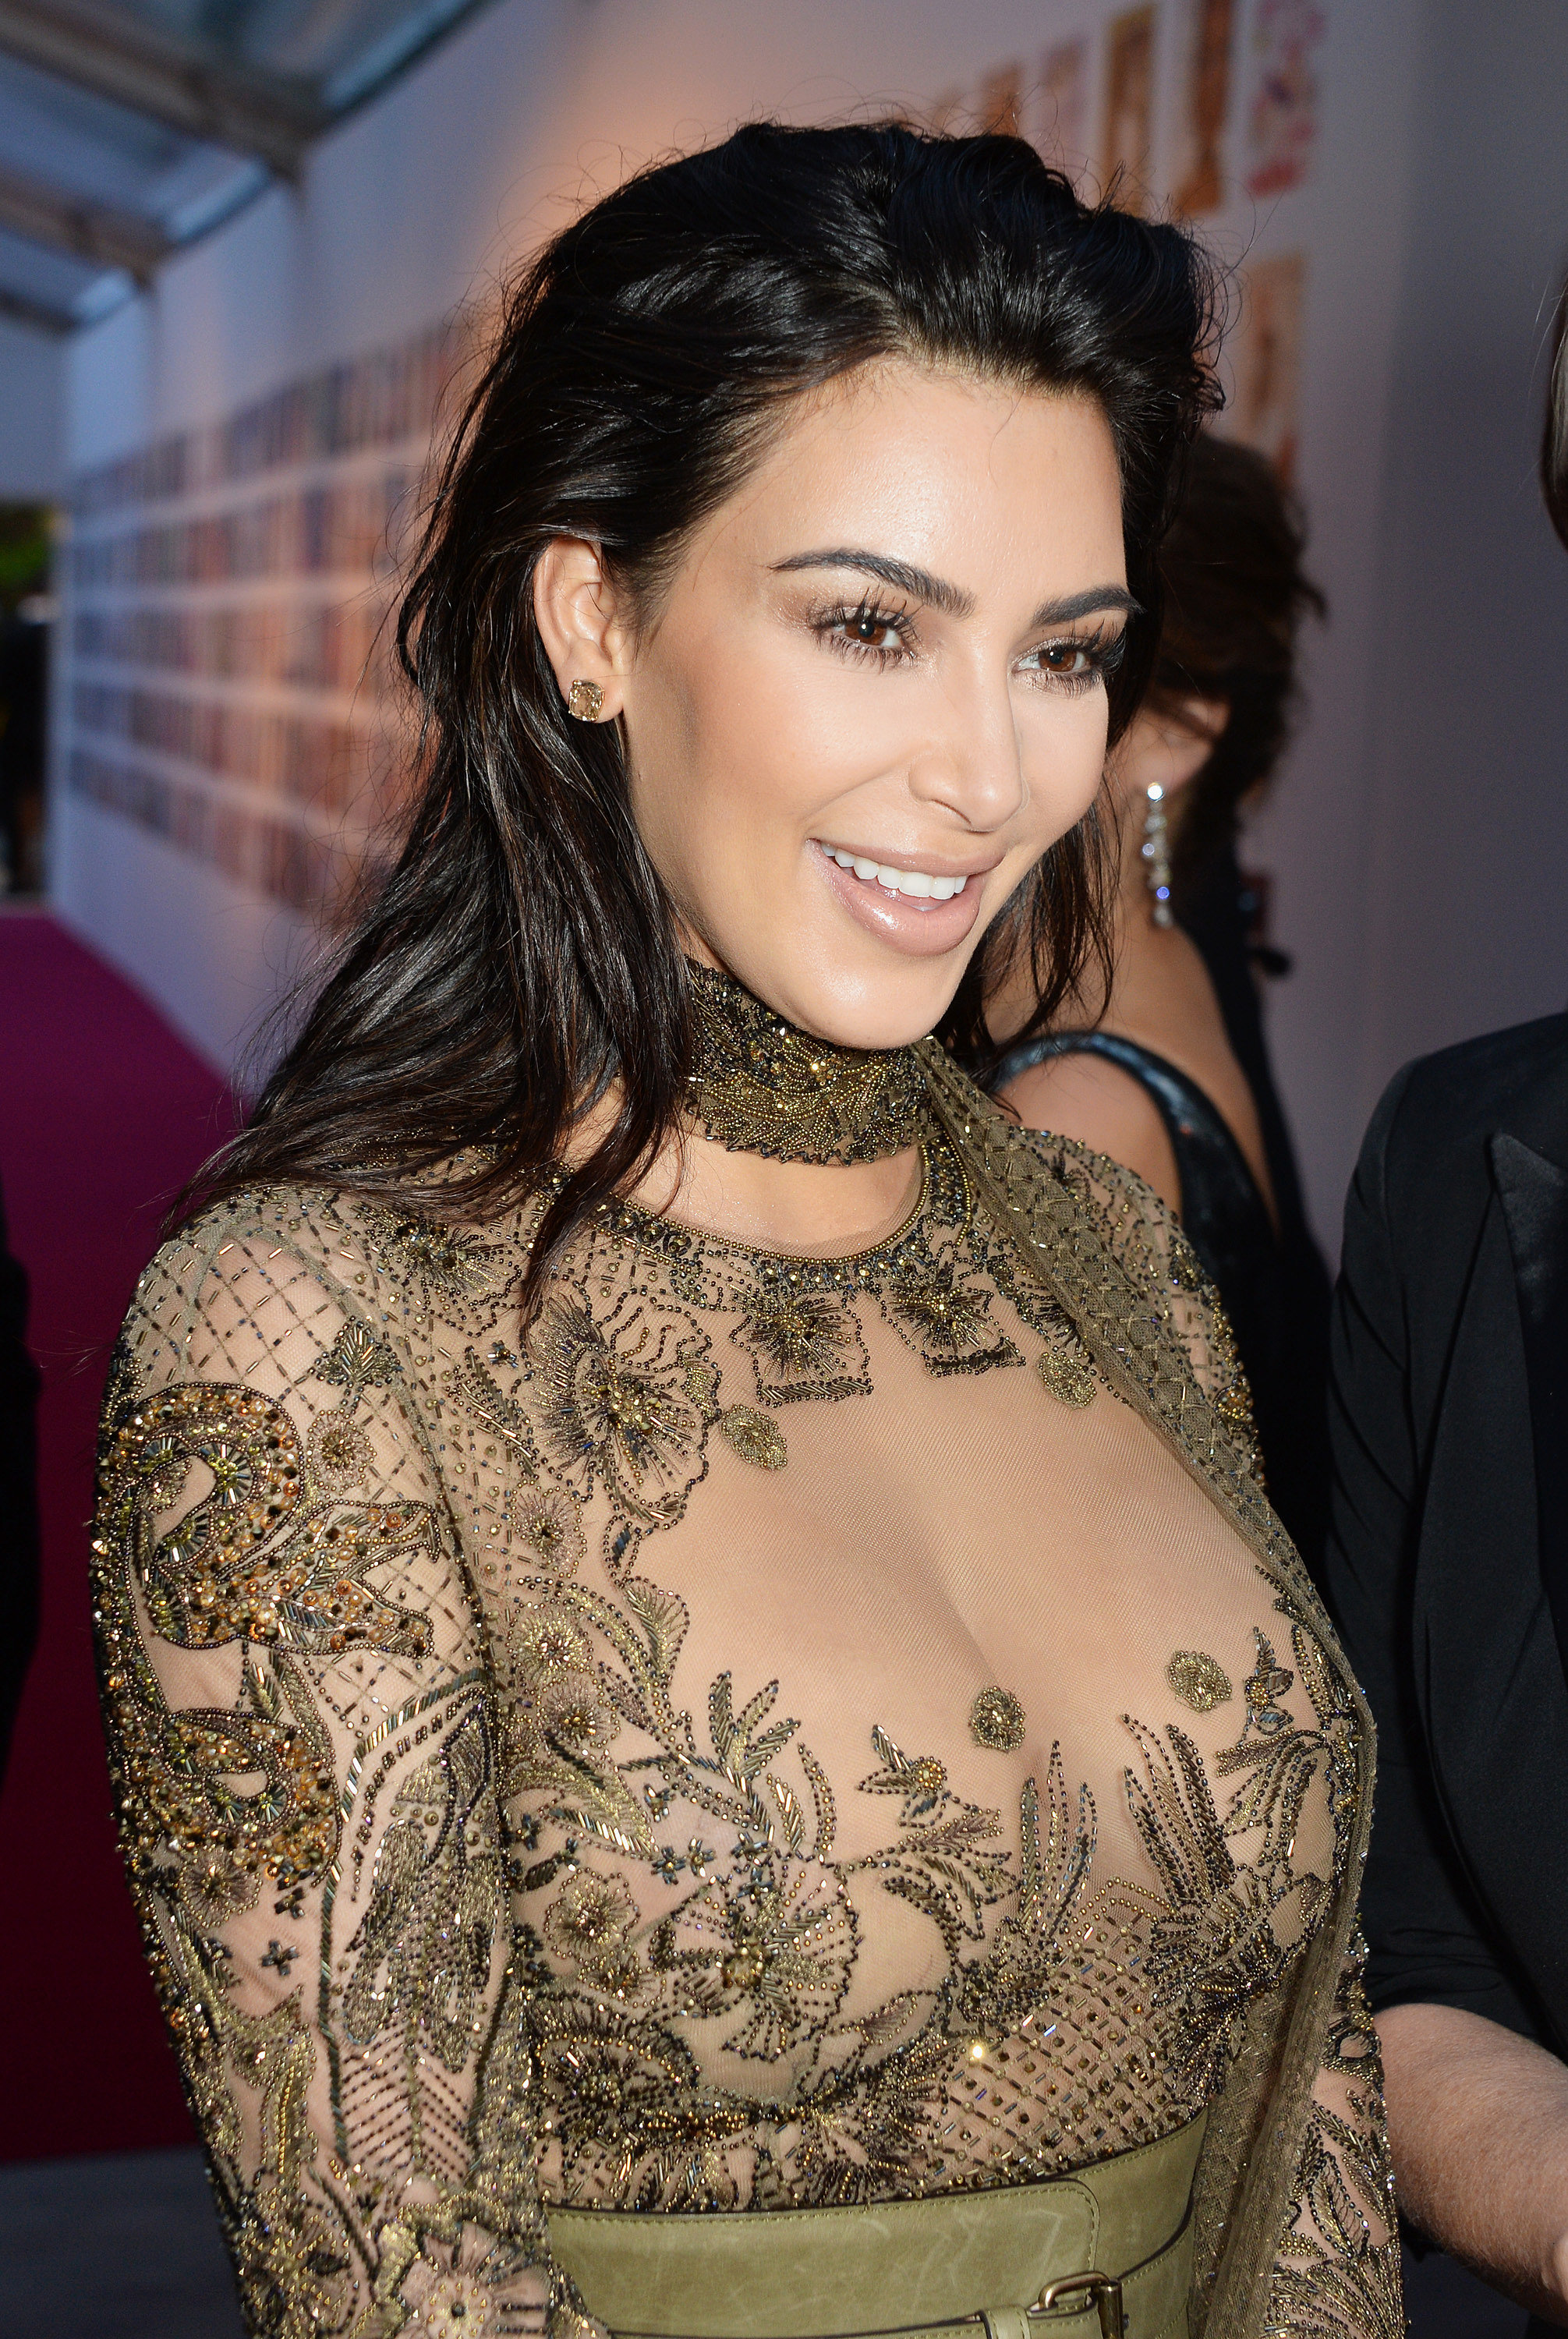 Kim-Kardashian-Kanye-West-Vogue-100-Gala-Dinner-2016